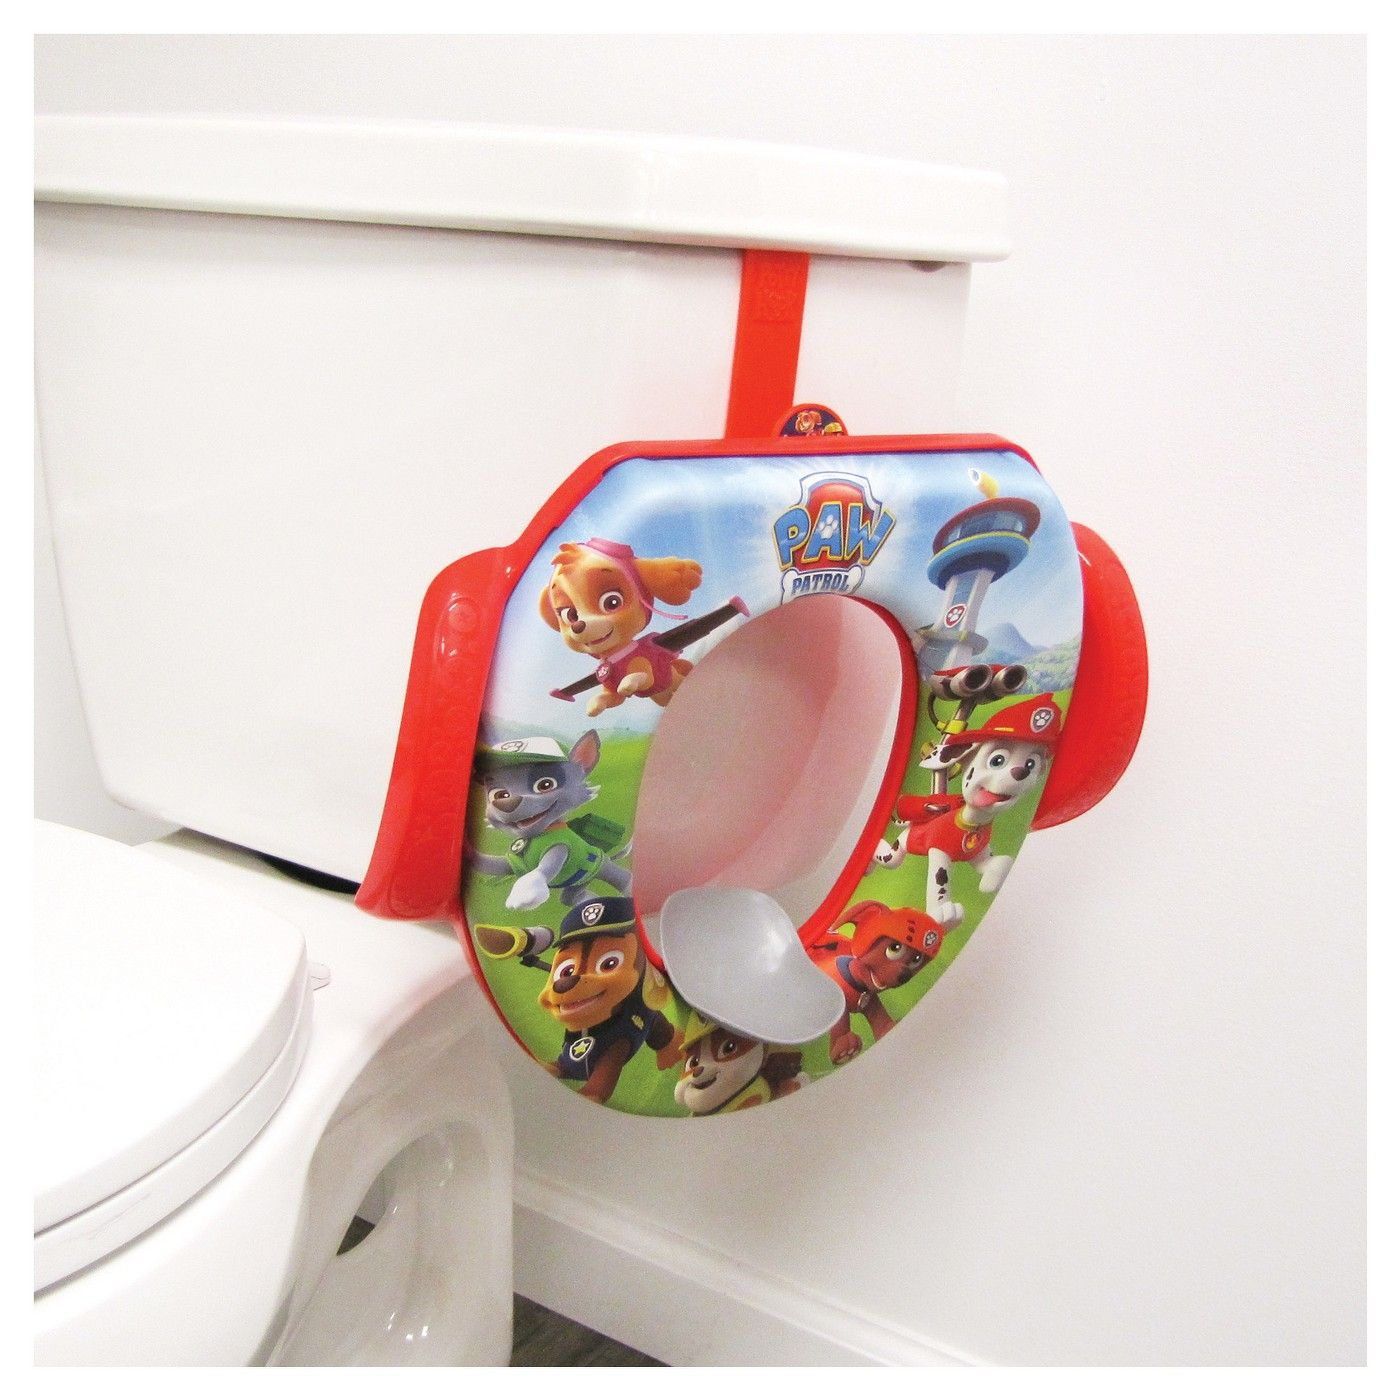 Wondrous Nickelodeon Paw Patrol Toilet Training Seat Spielzeug Ncnpc Chair Design For Home Ncnpcorg